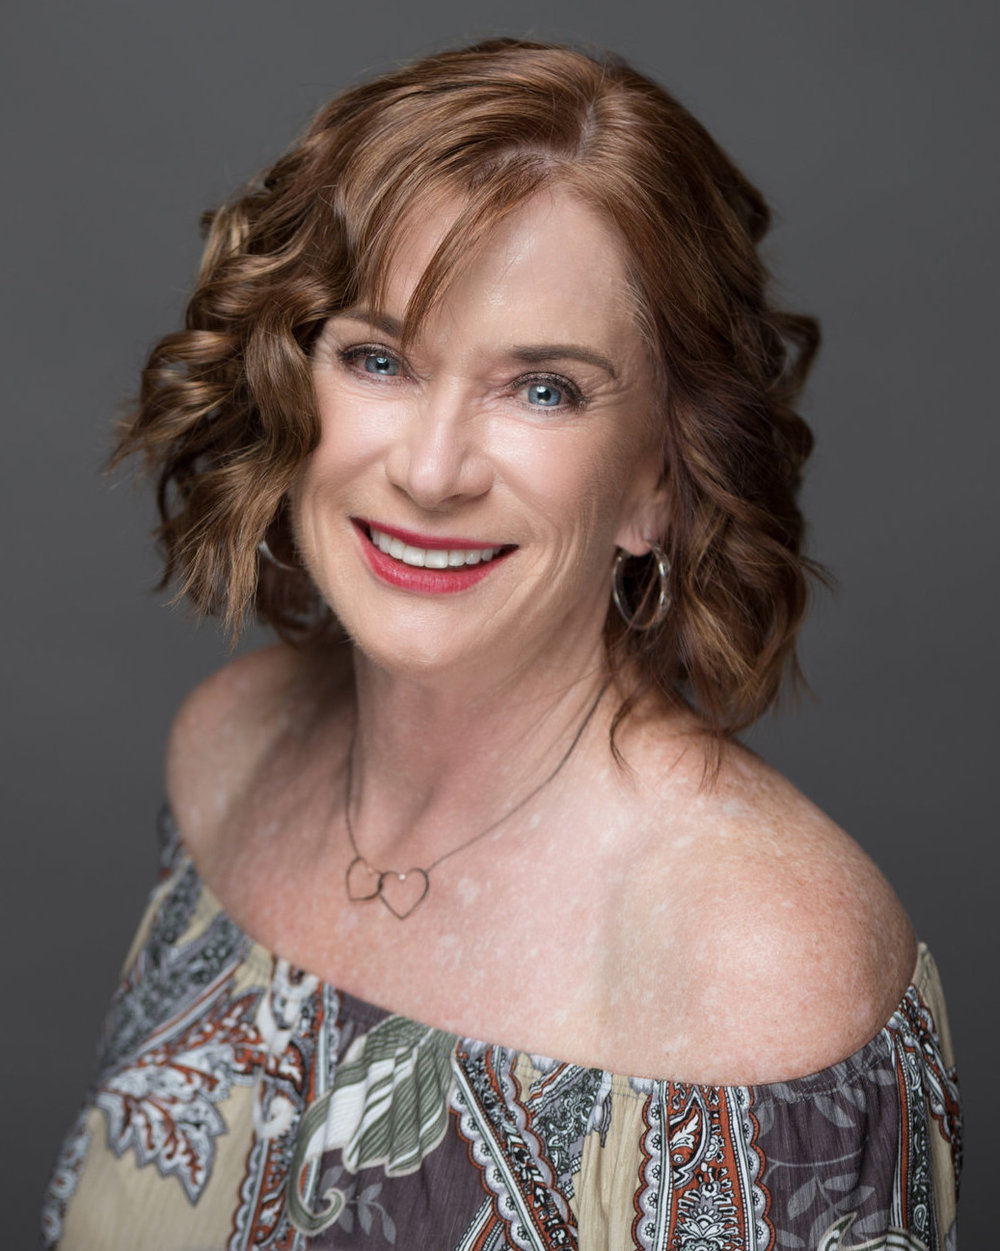 mature client smiling in off the shoulder top curled short hair soft red lipstick natural soft glam glowing makeup by kim baker beauty san jose california makeup artist